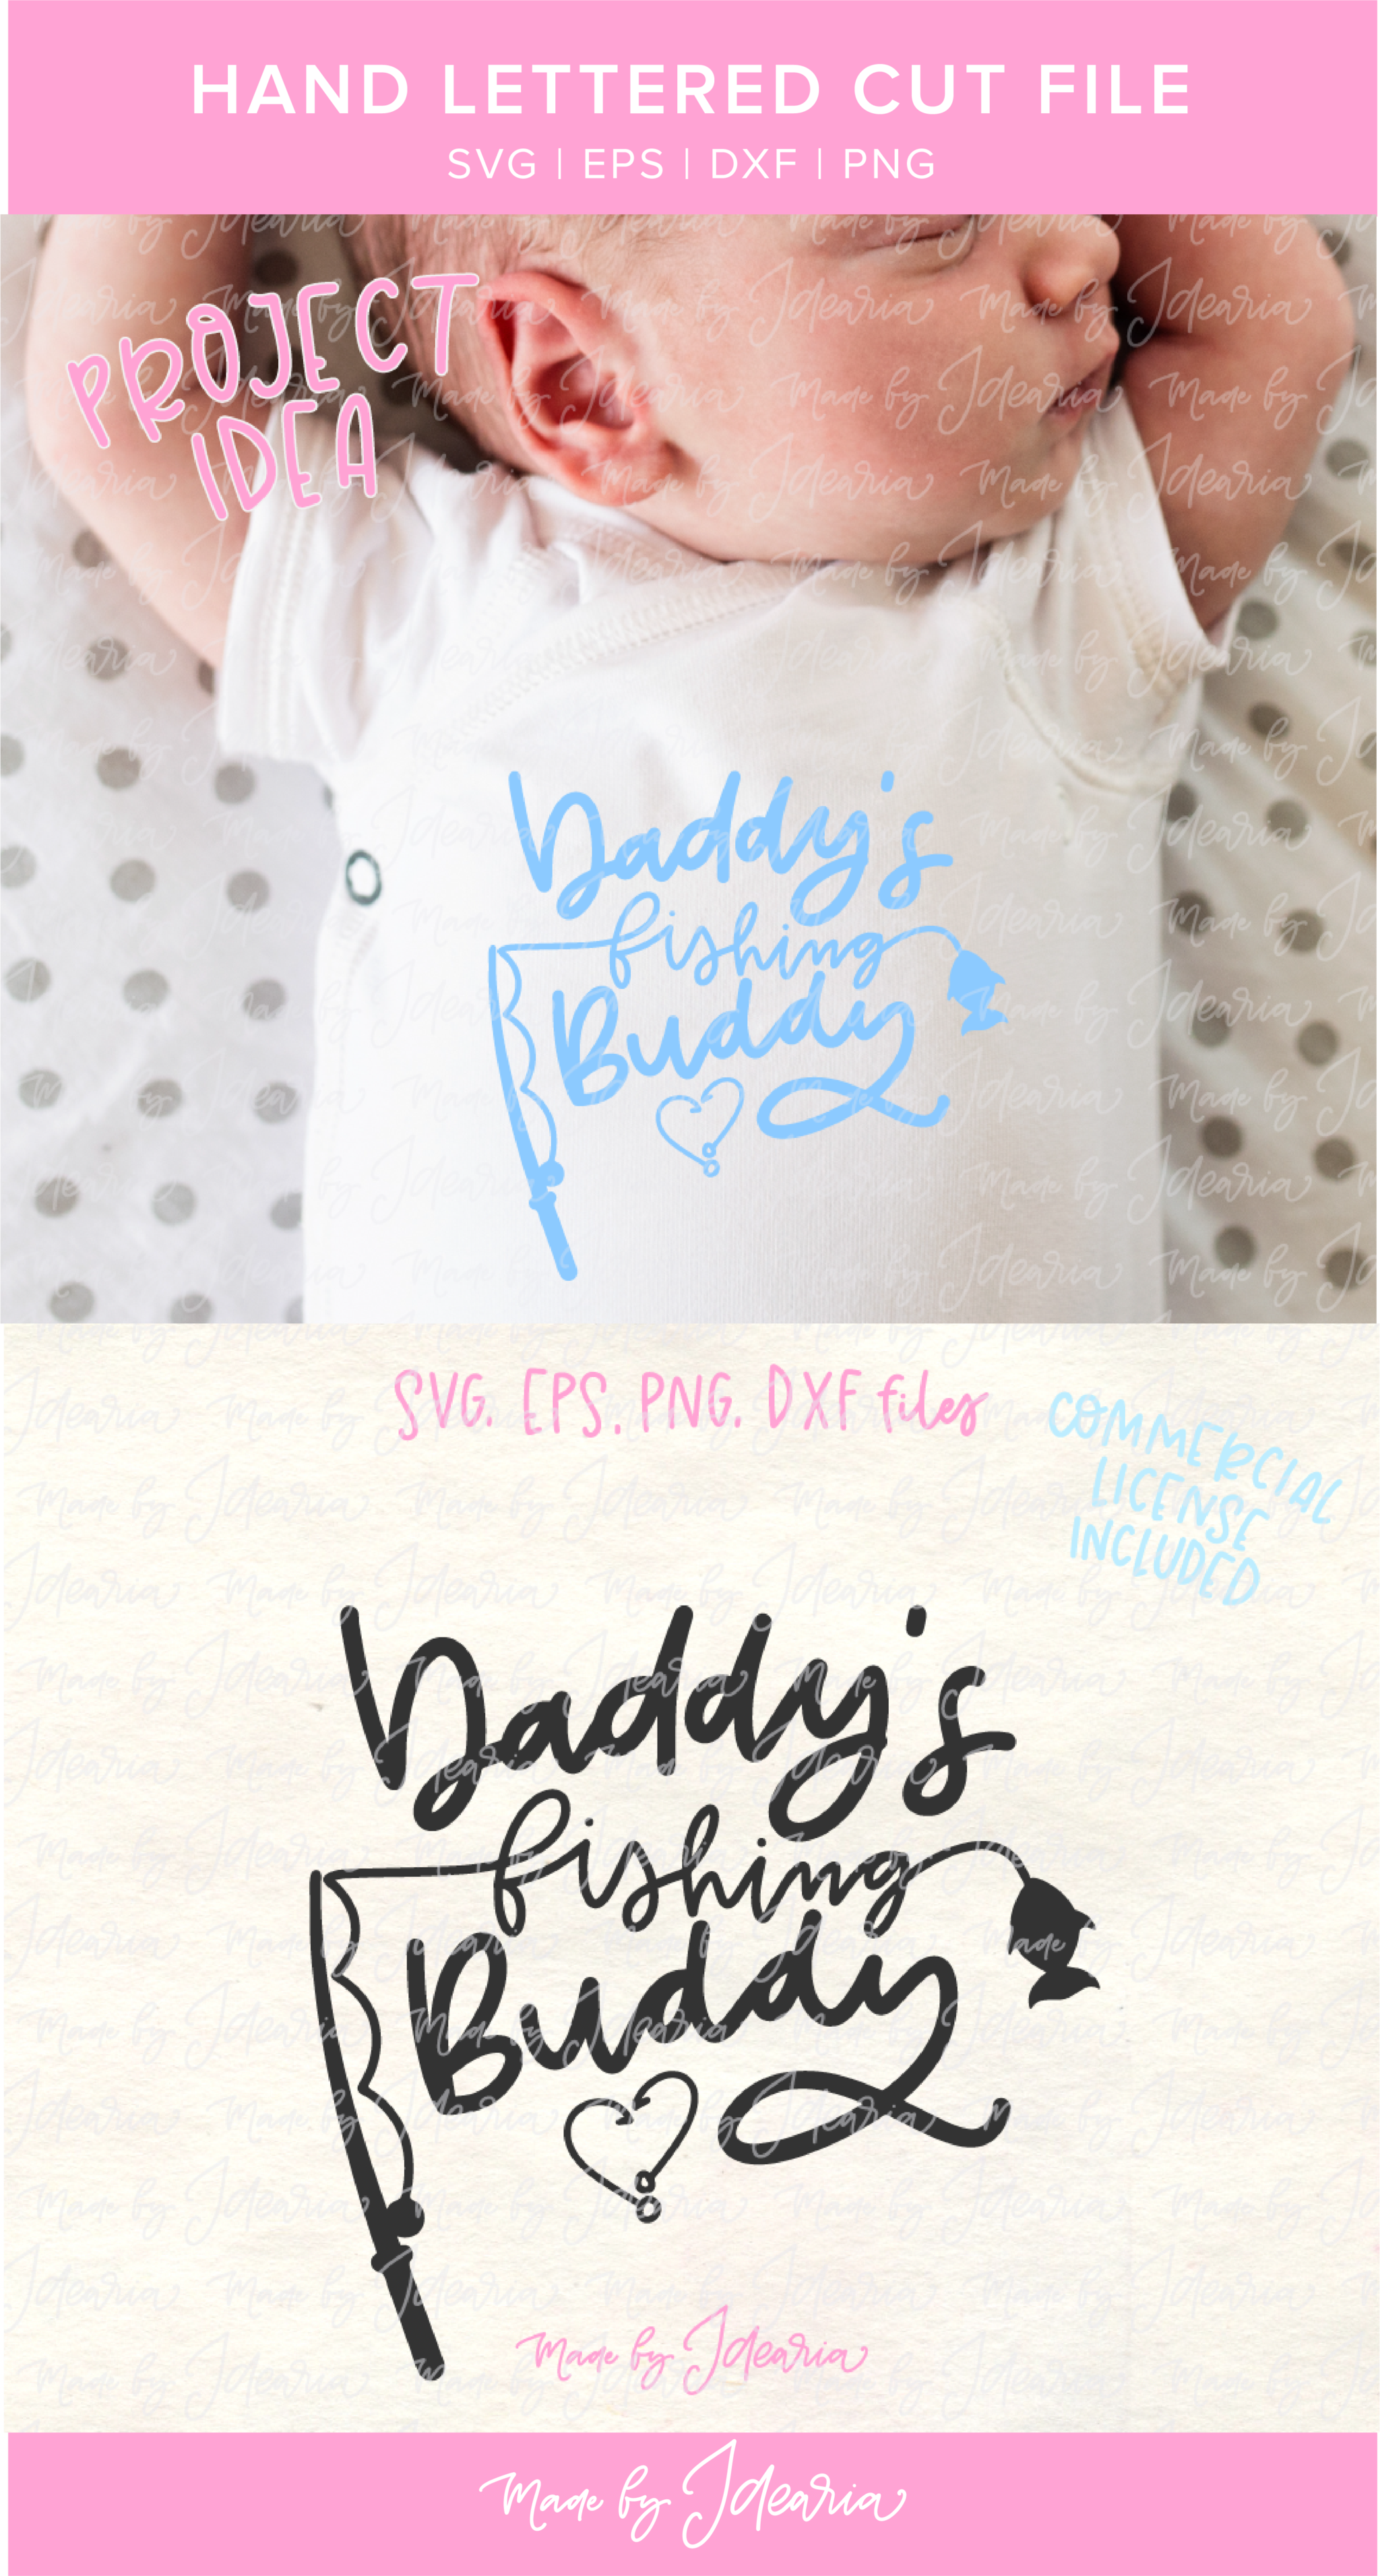 Download Daddy S Fishing Buddy Svg File Featuring A Fishing Pole And A Fish Makes A Cute Design For Father Monogram Fishing Shirt Fishing Shirt Ideas Monogram T Shirts